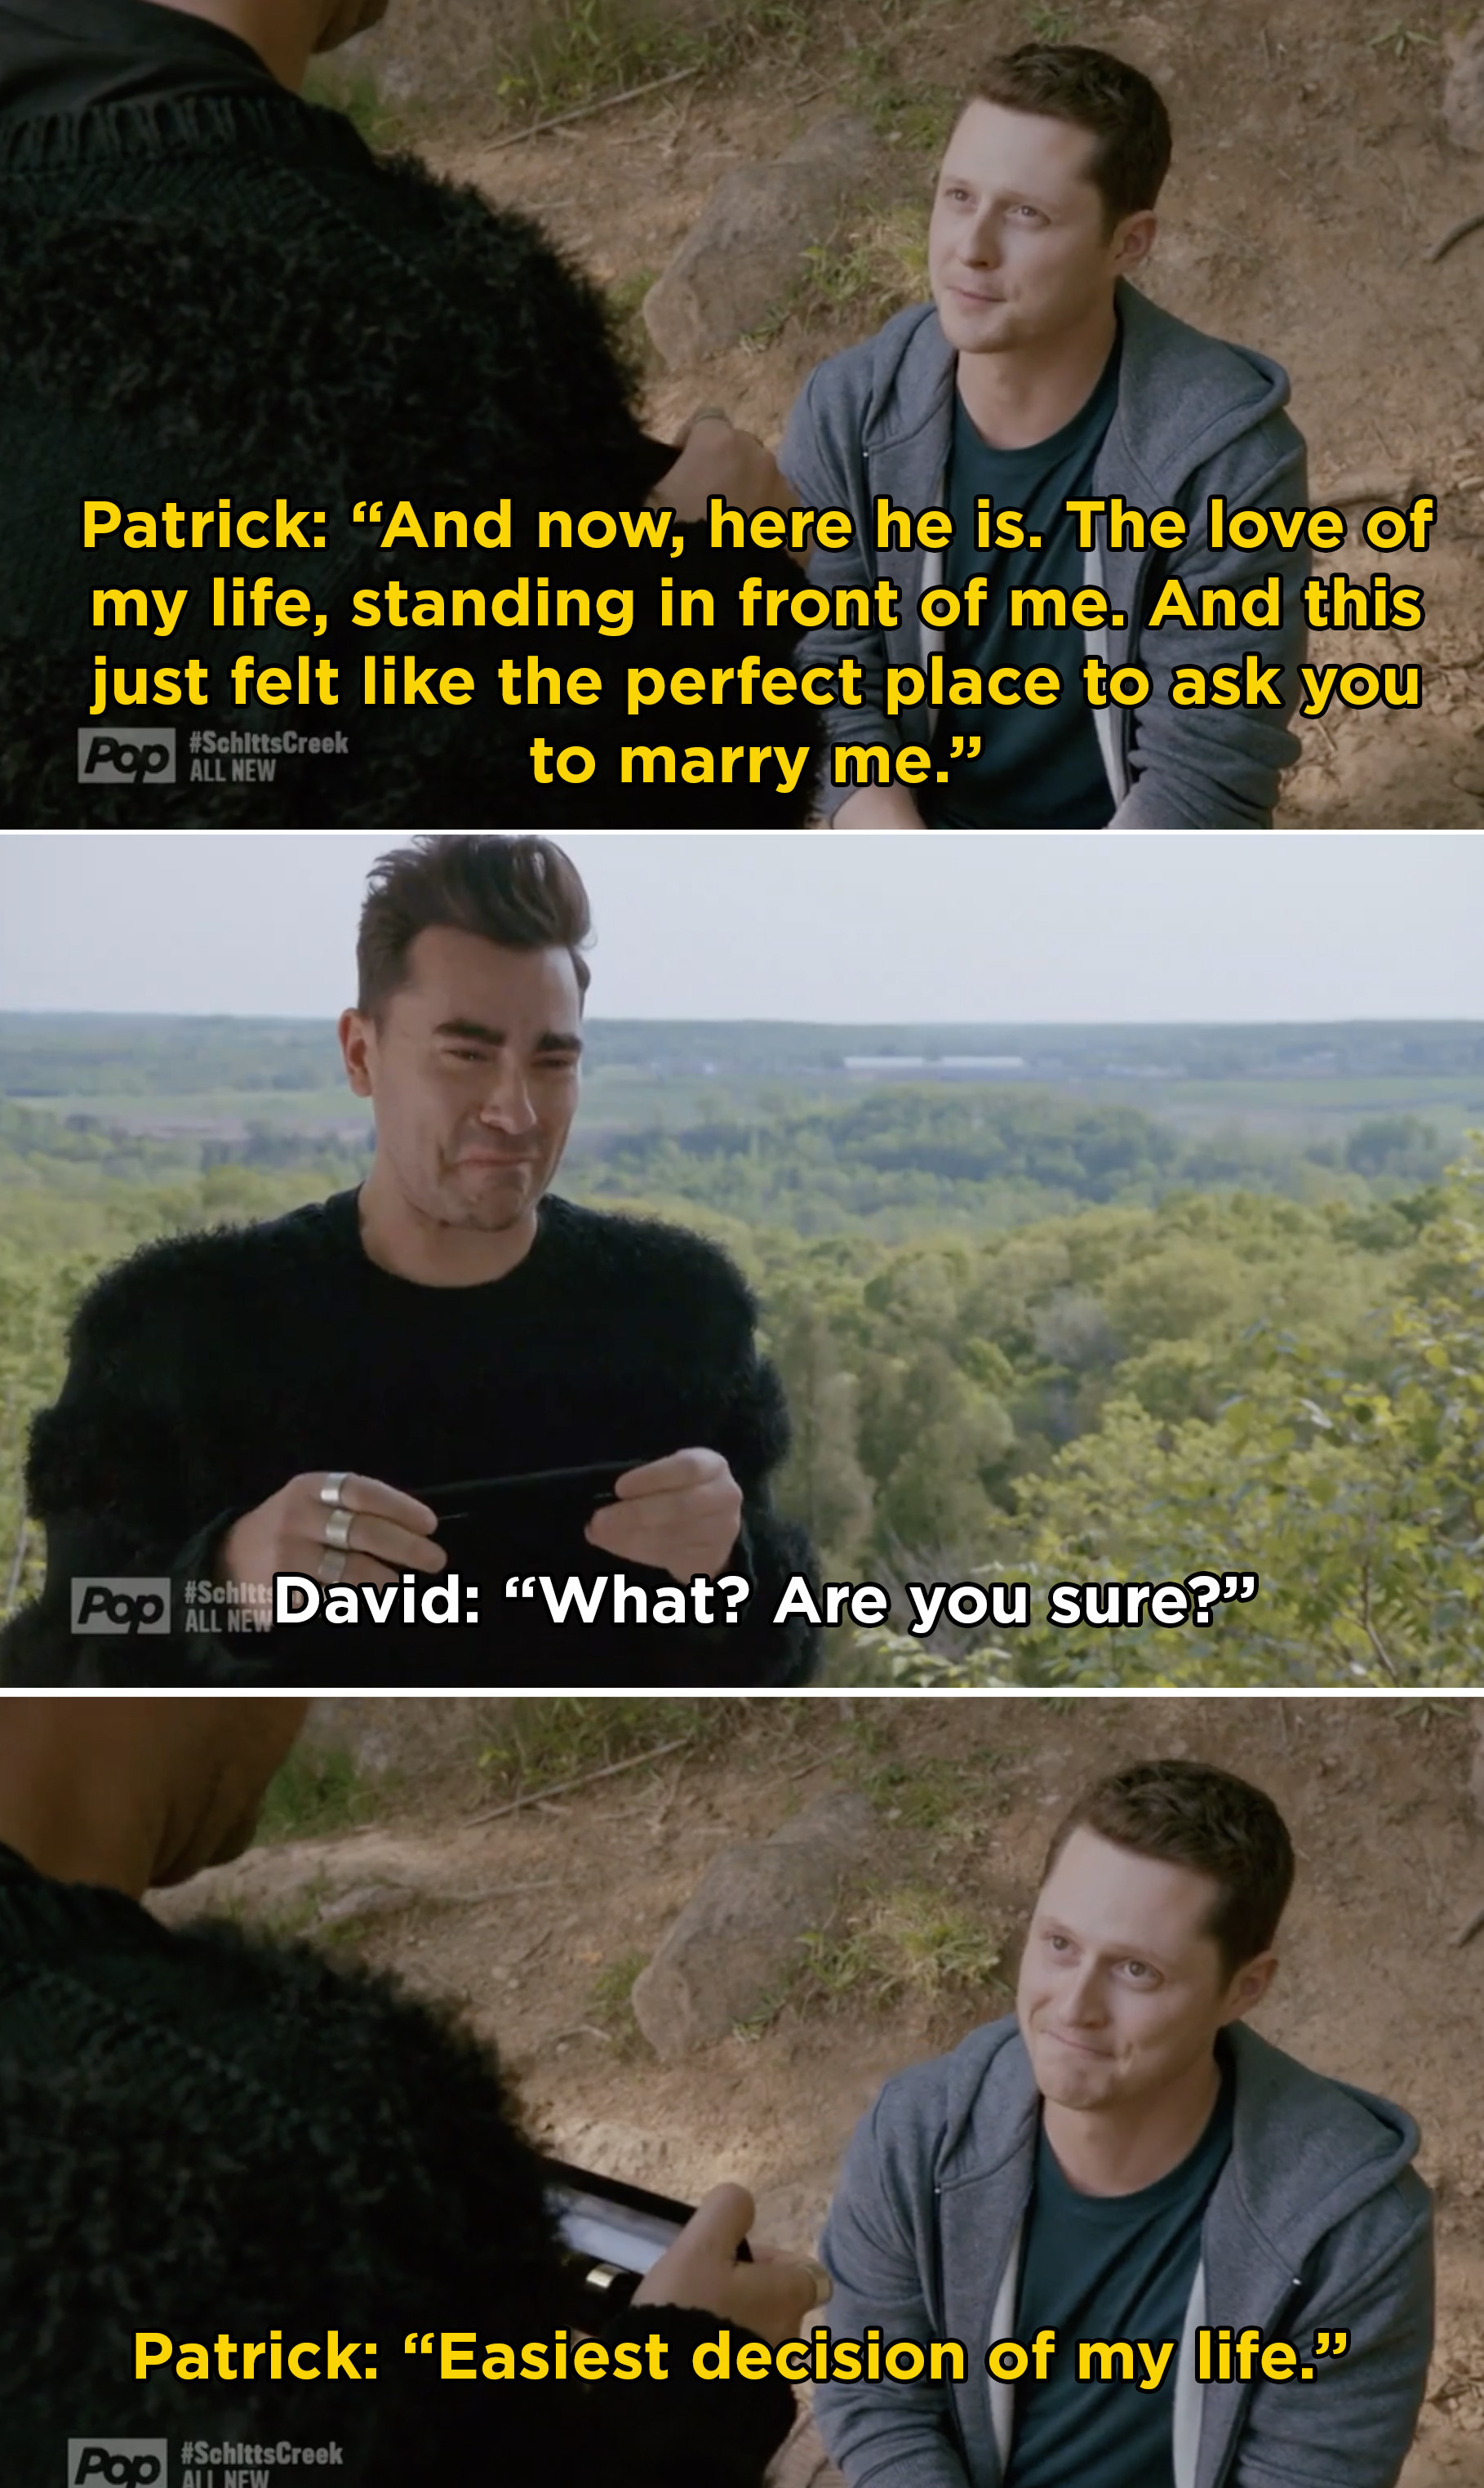 Patrick proposing to David and saying it was the easiest decision of his life